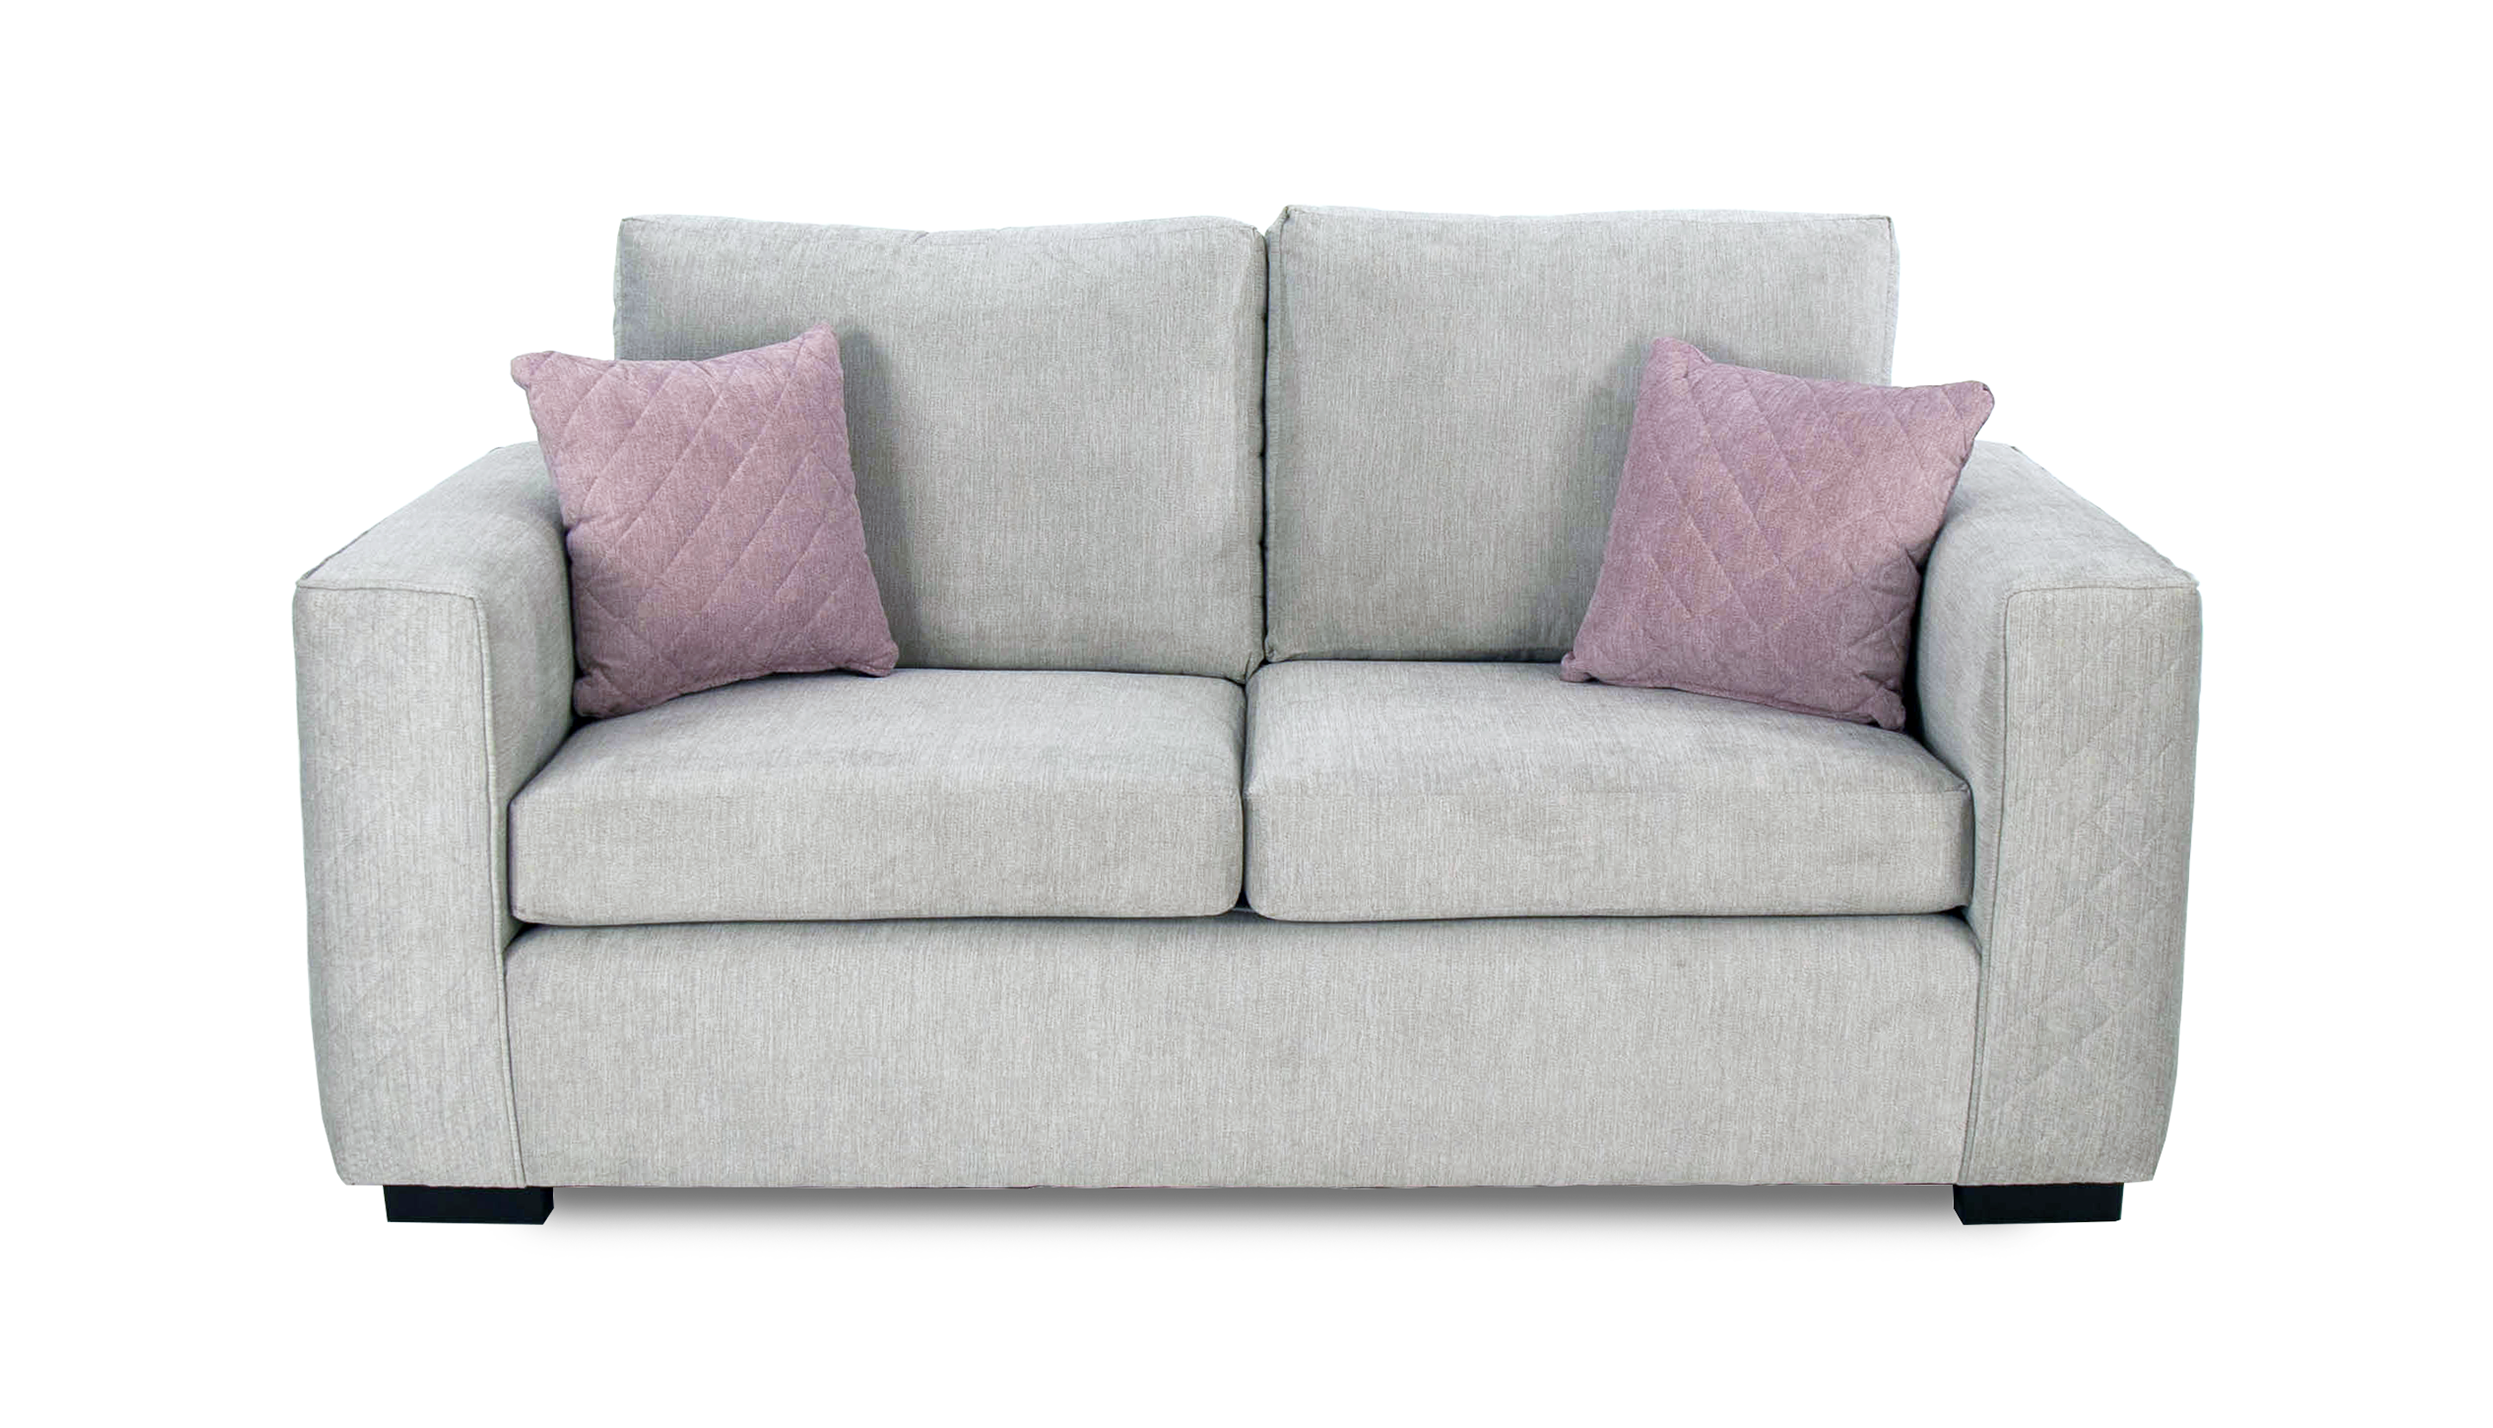 Bella 3 Seater Sofa - AHF Furniture & Carpets